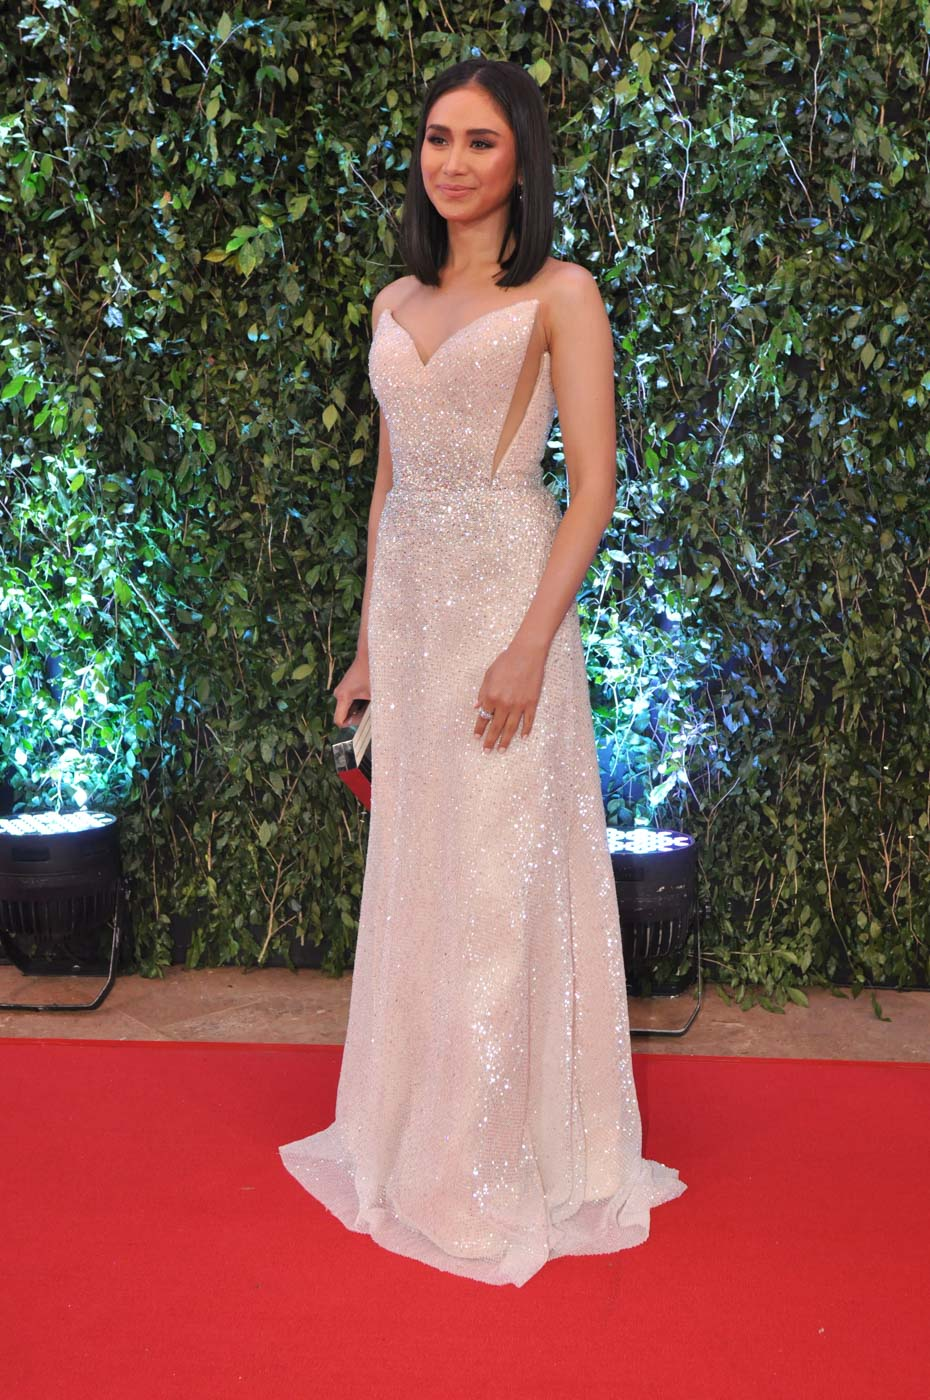 ABS-CBN Ball 2018: Fashion review